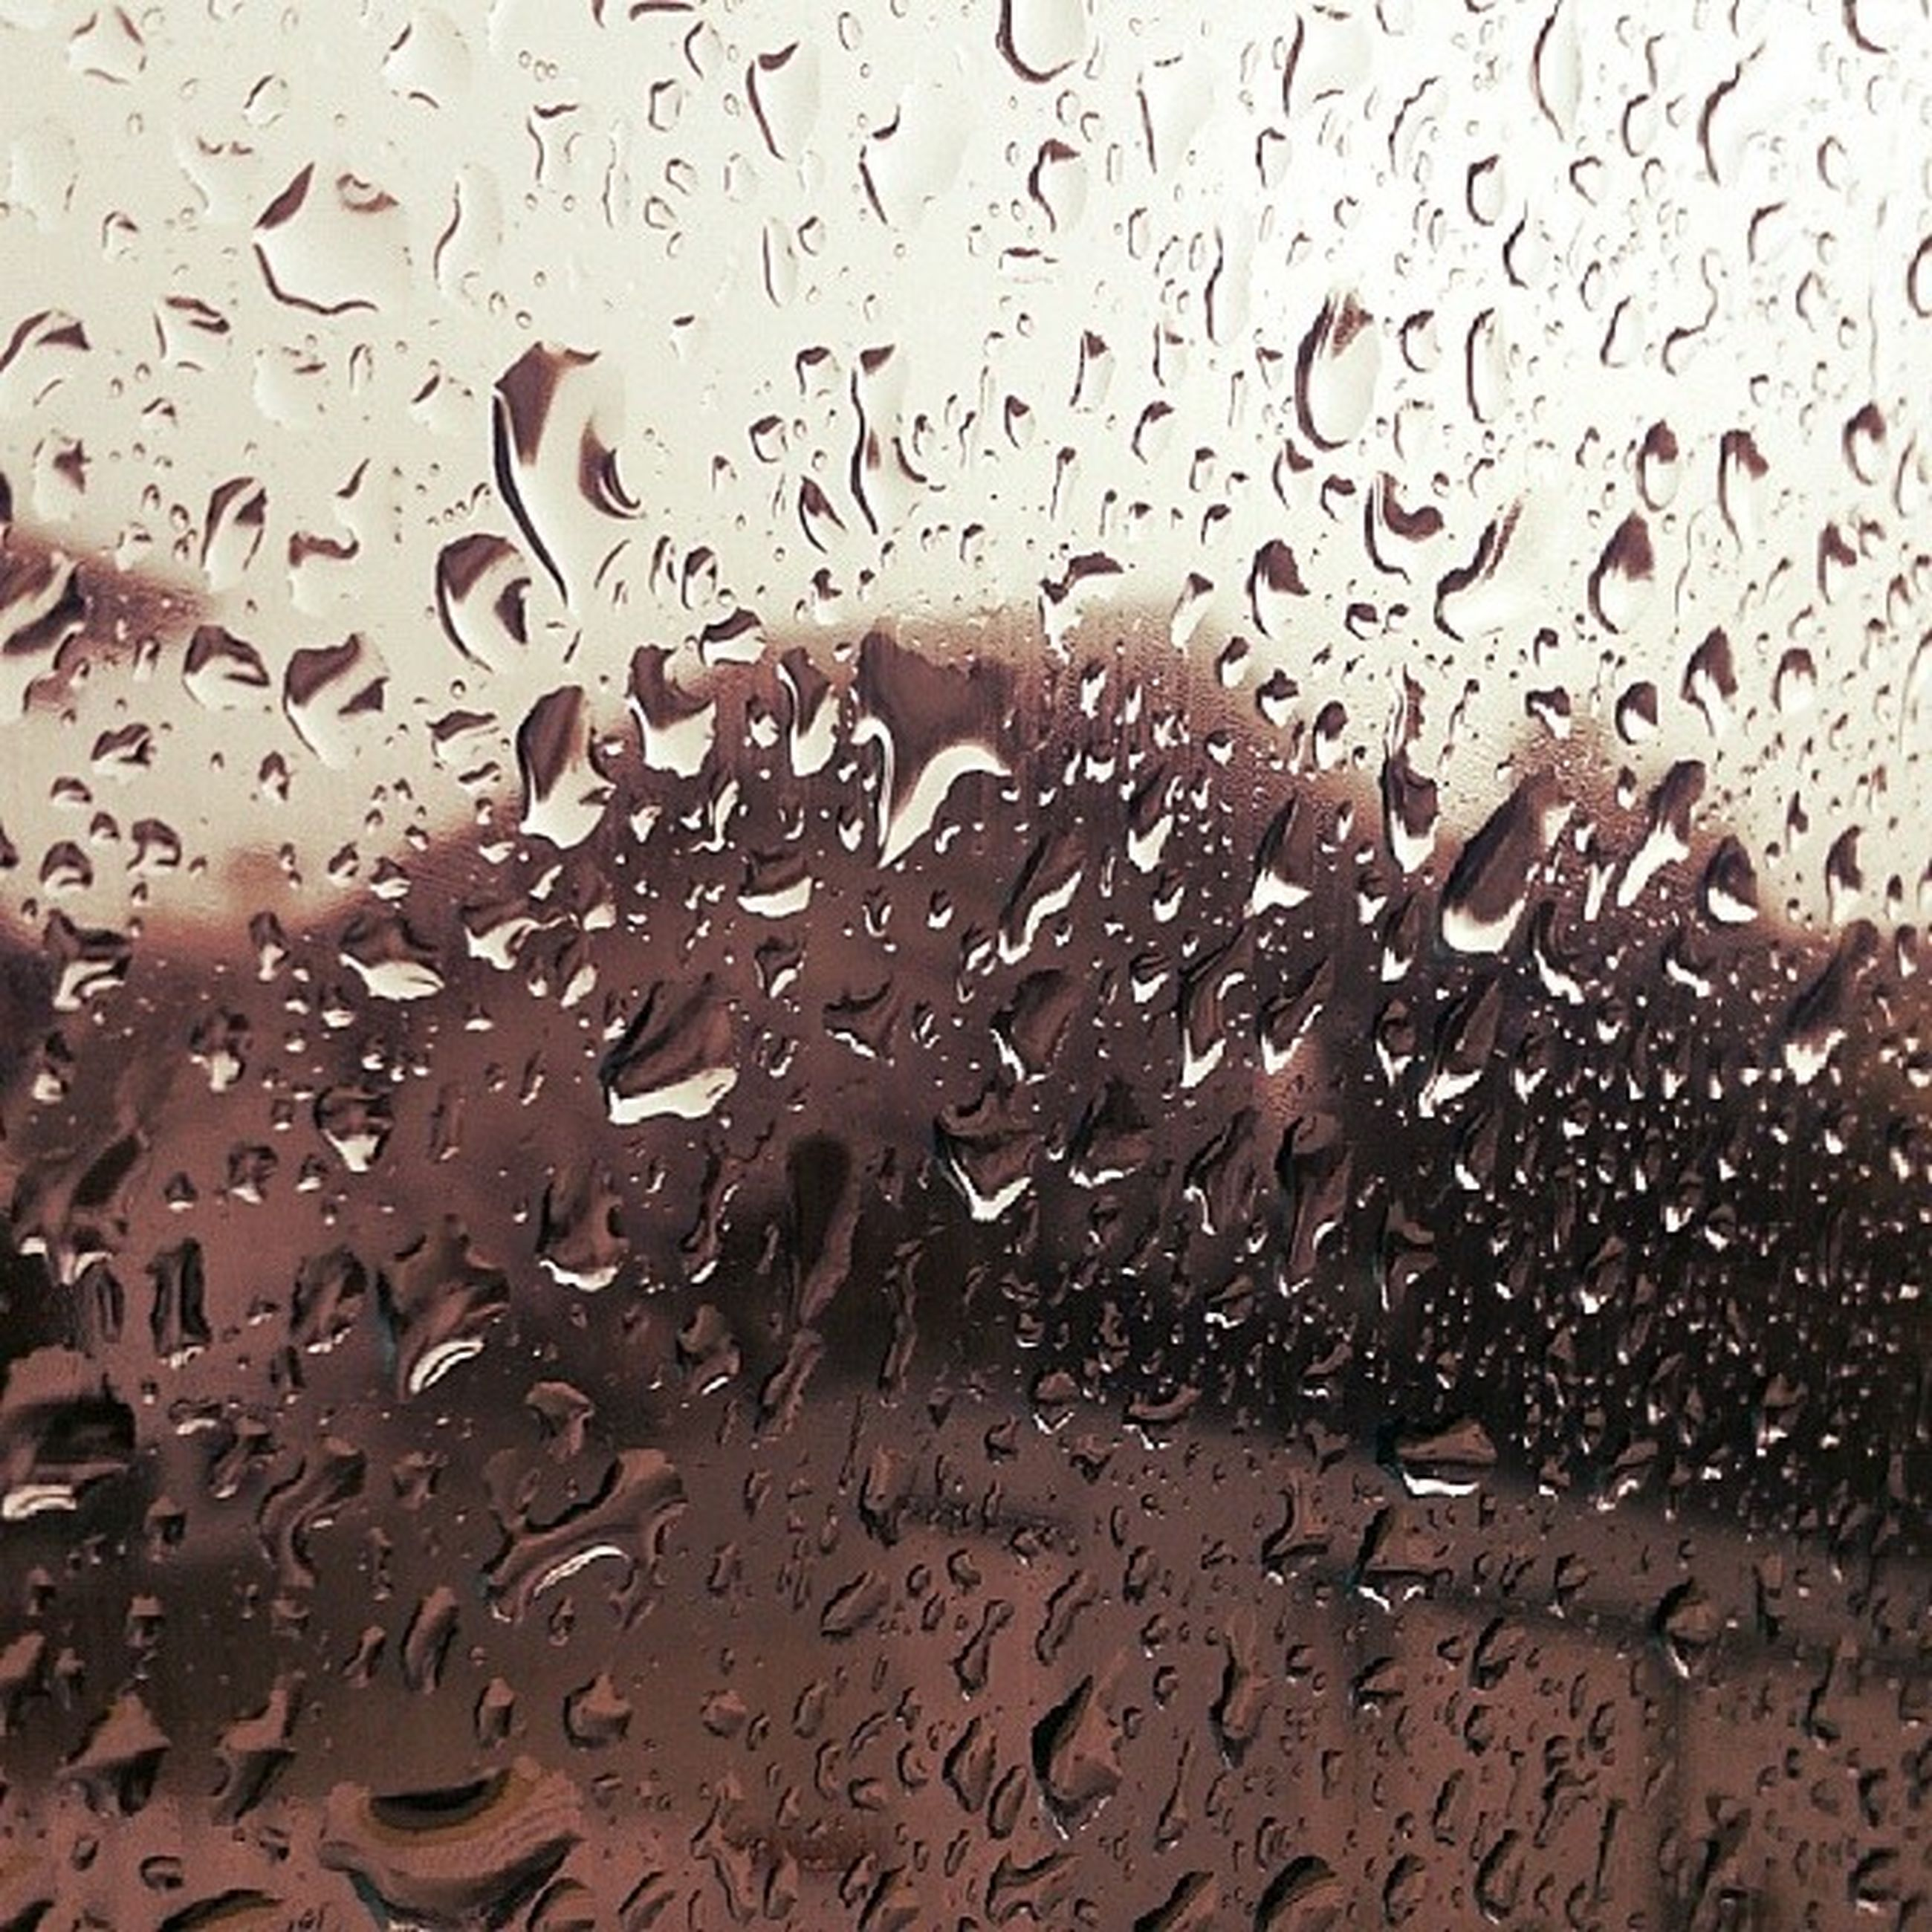 drop, wet, window, water, indoors, rain, transparent, full frame, glass - material, backgrounds, raindrop, weather, glass, season, close-up, focus on foreground, sky, no people, pattern, water drop